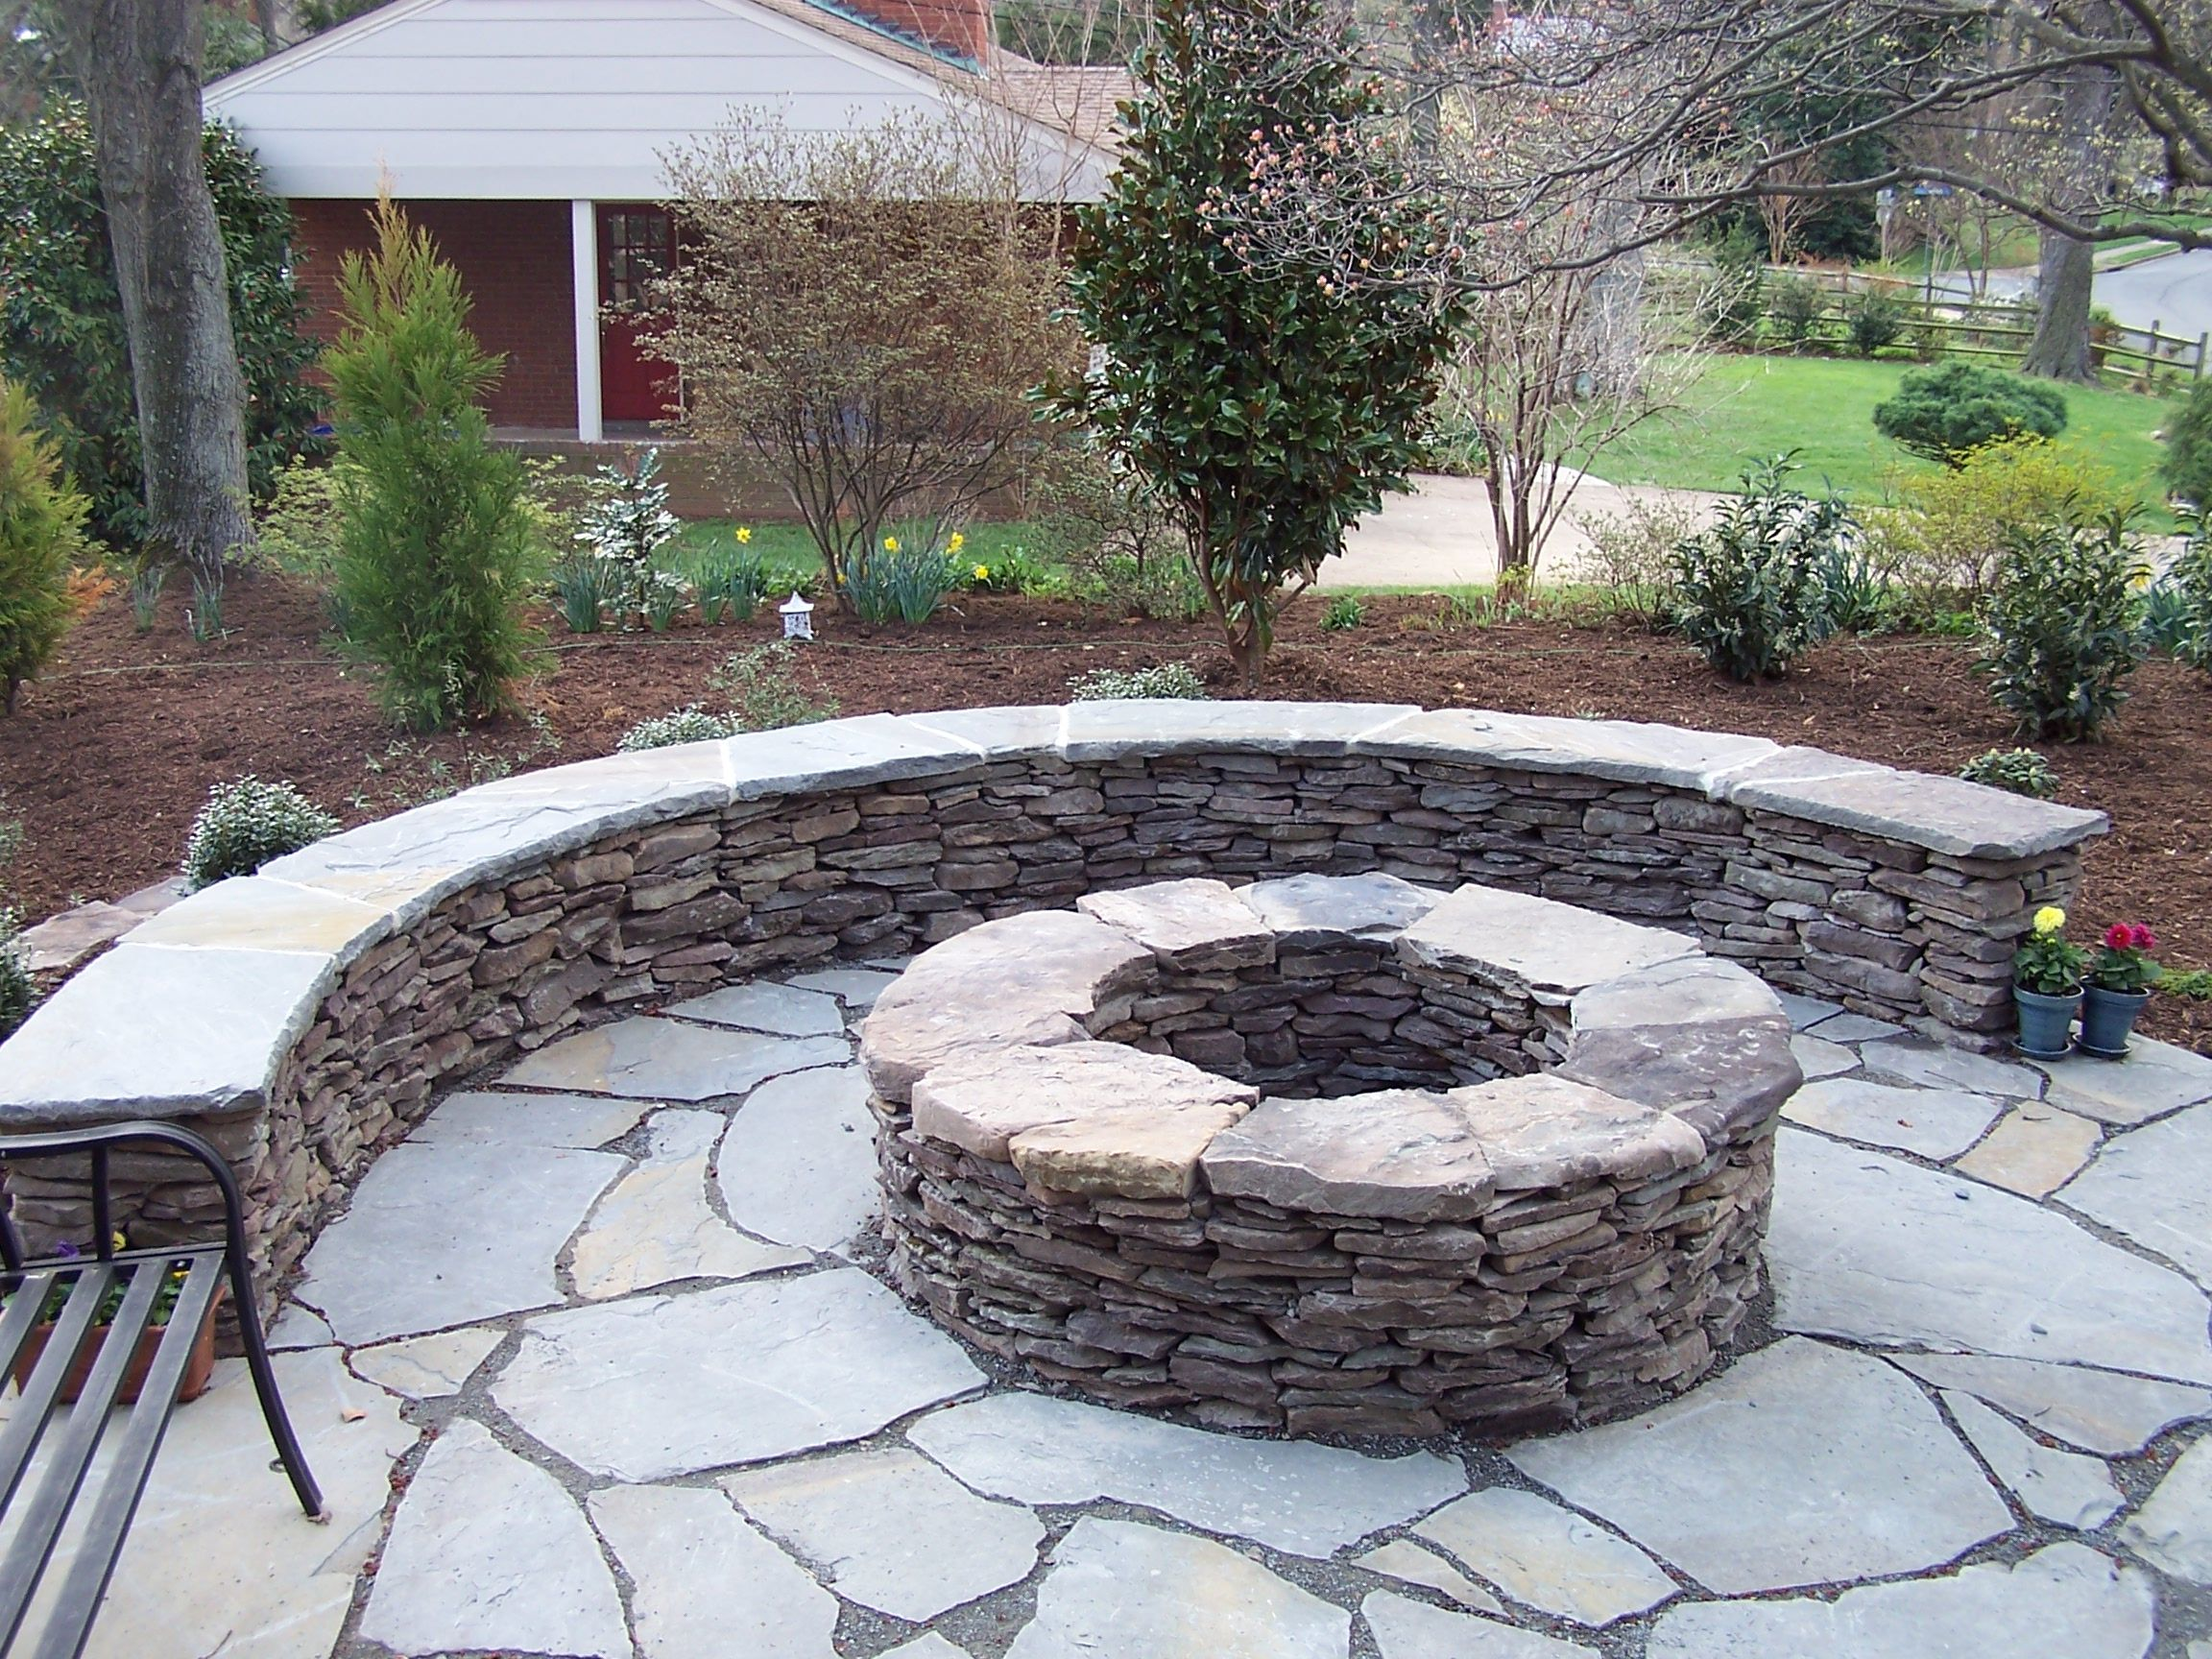 Firepit This Uniquely Shaped Brick Veneered Fire Pit In Philomont Va Fire Pit Landscaping Garden Fire Pit Outdoor Fire